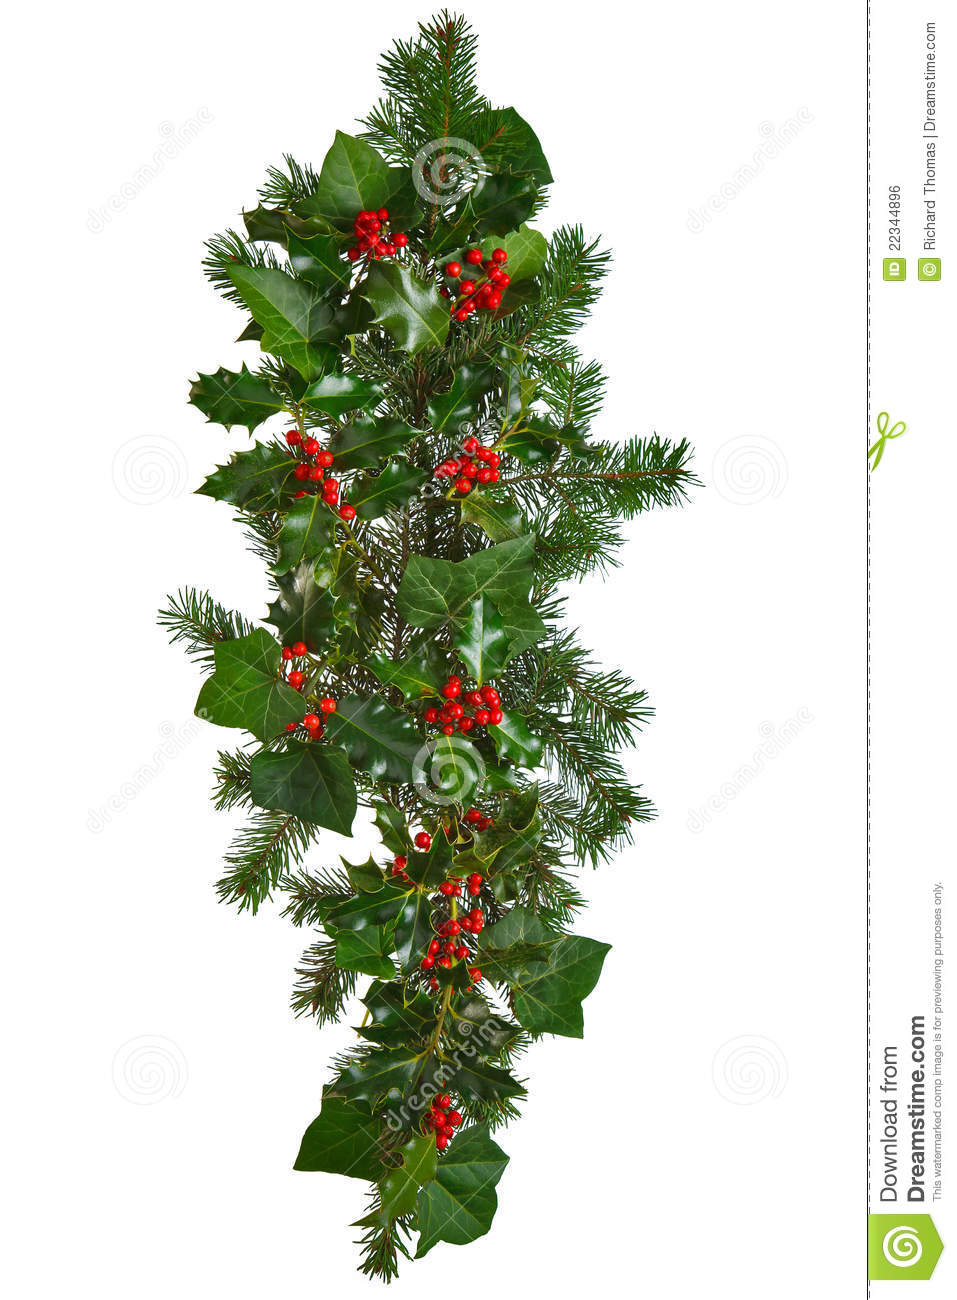 Photo Of A Straight Christmas Garland With Holly Red Berries Ivy And Spruce Isolated On White Background